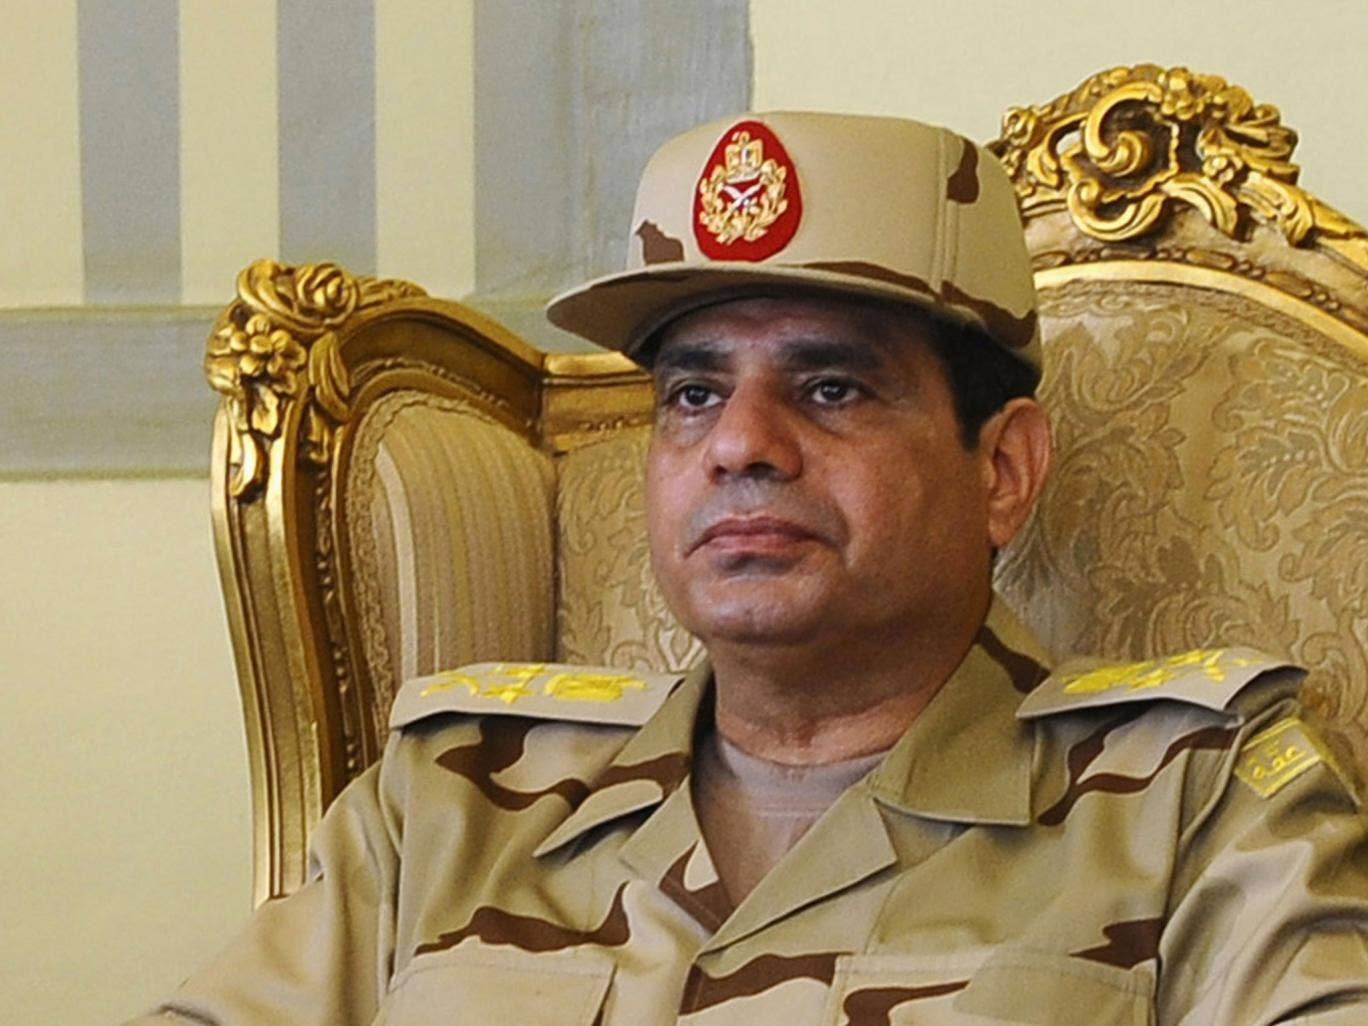 Abdel Fatah al-Sisi  staged a coup in 2013 to remove his democratically elected Islamist predecessor, Mohamed Morsi